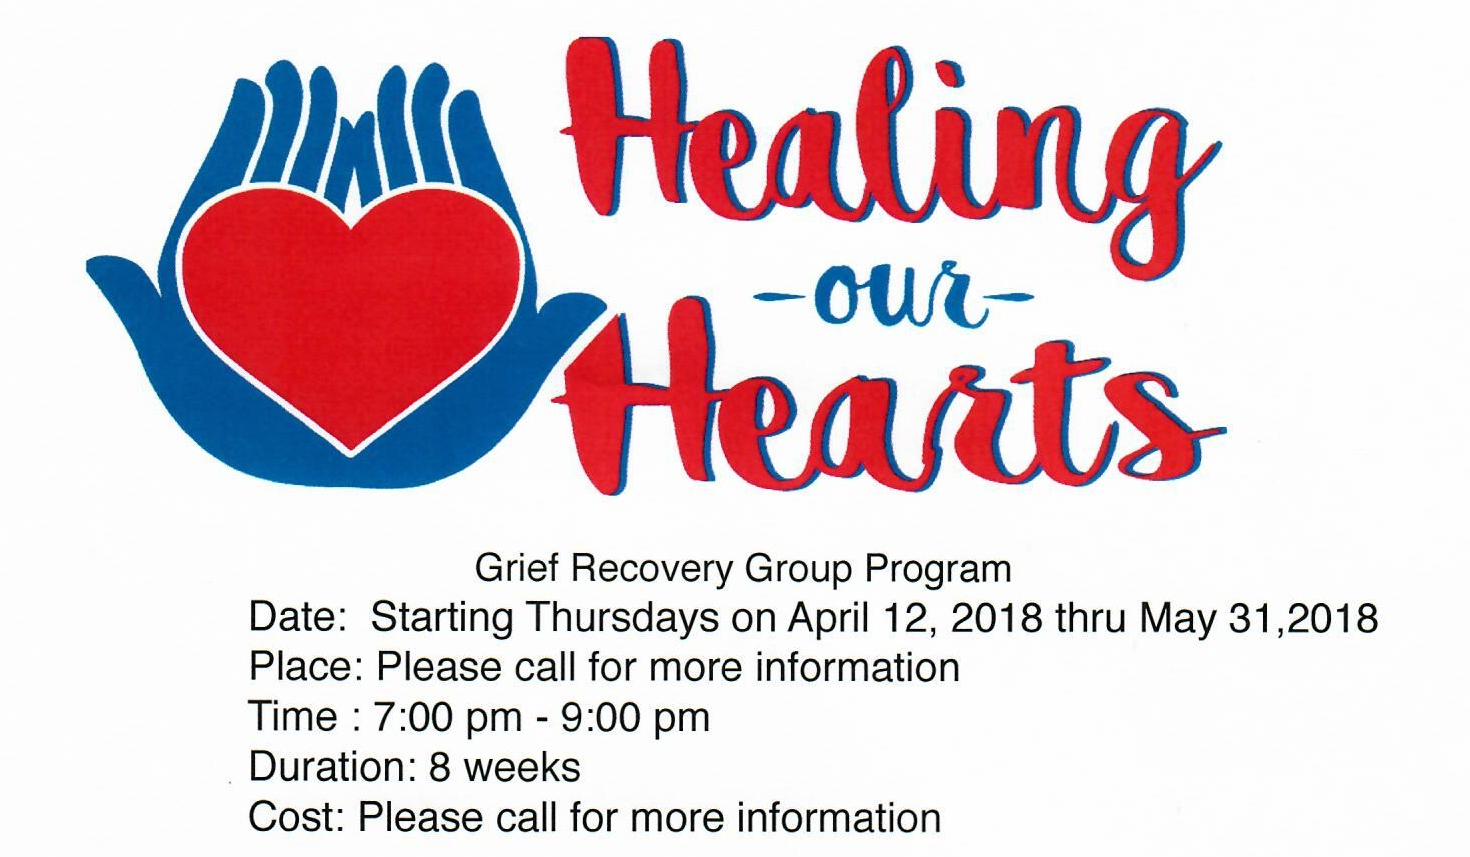 ThursdayStarting April 127:00pm - 9:00pm - 8 week Grief Recovery Group ProgramNew Point Wellness Community Room(951)-719-9025Email healingthroughgrief@gmail.com